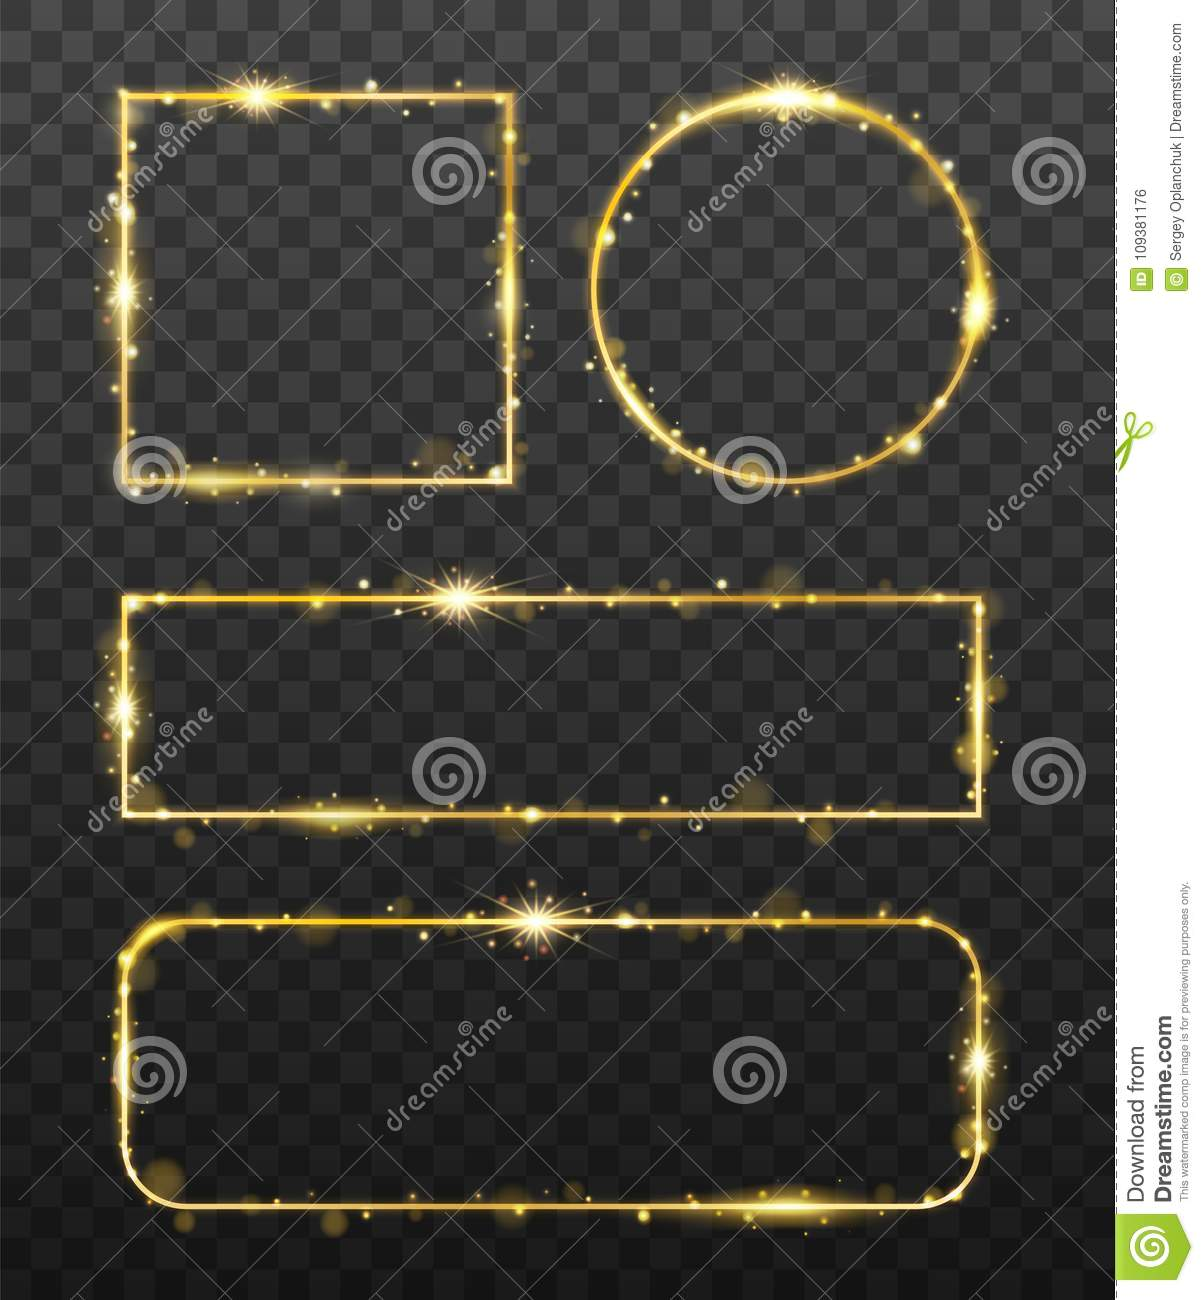 Golden glowing frames with shiny gold sparks. Decorative element for banner or templates with light glittering effect on